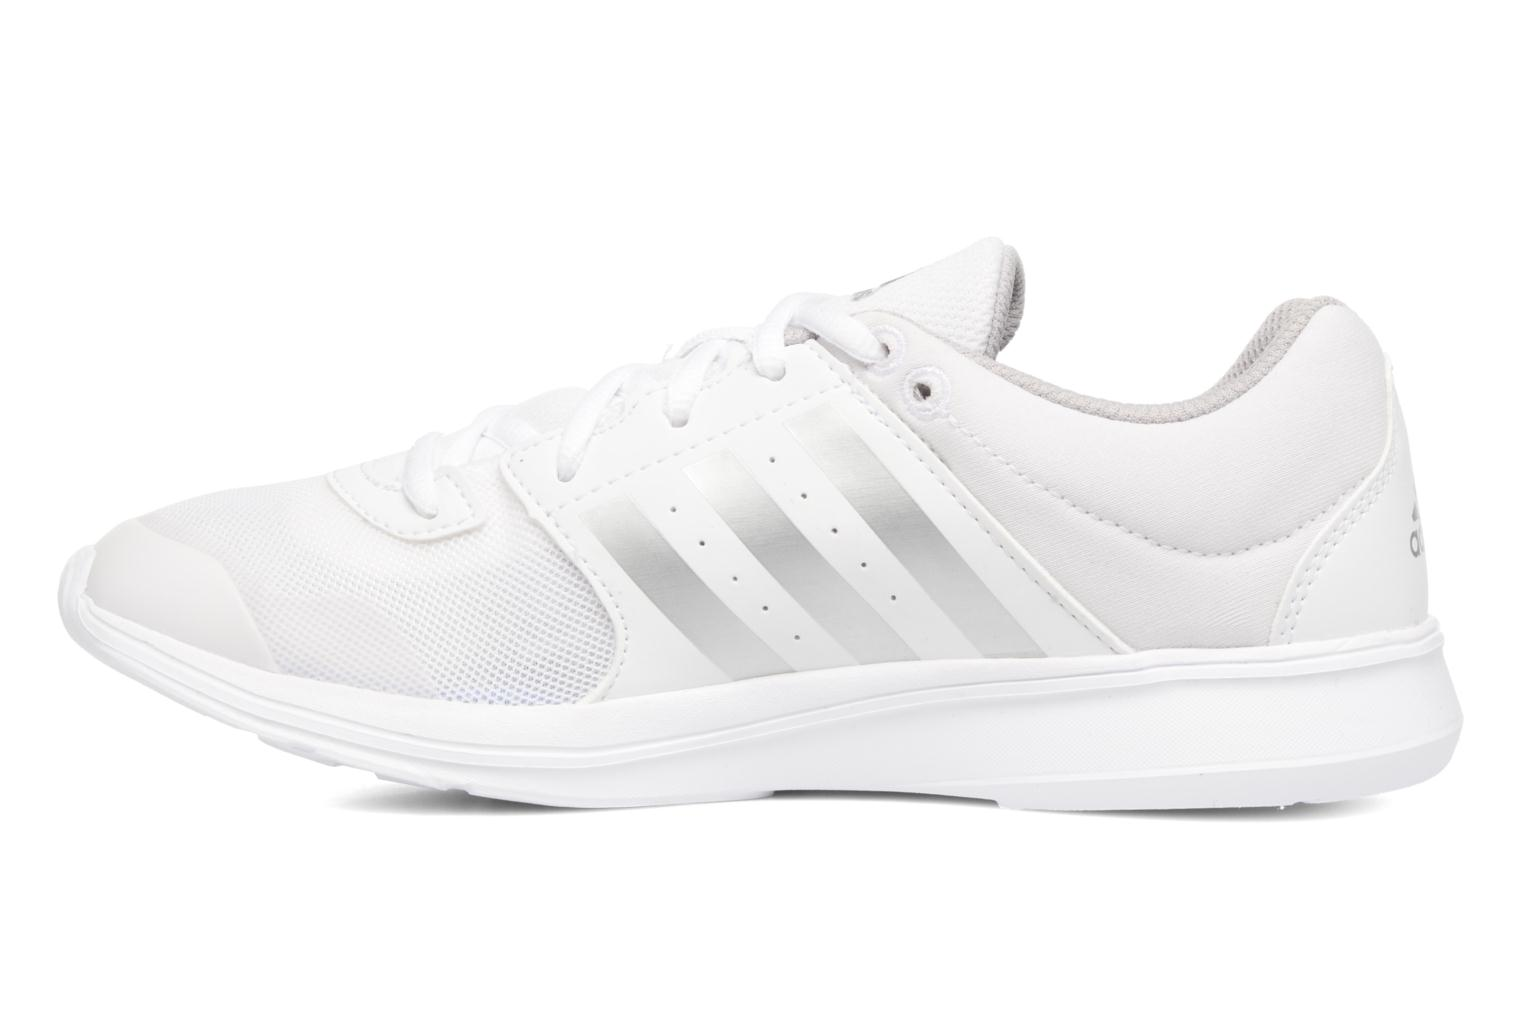 Chaussures de sport Adidas Performance Essential Fun 2 Blanc vue face